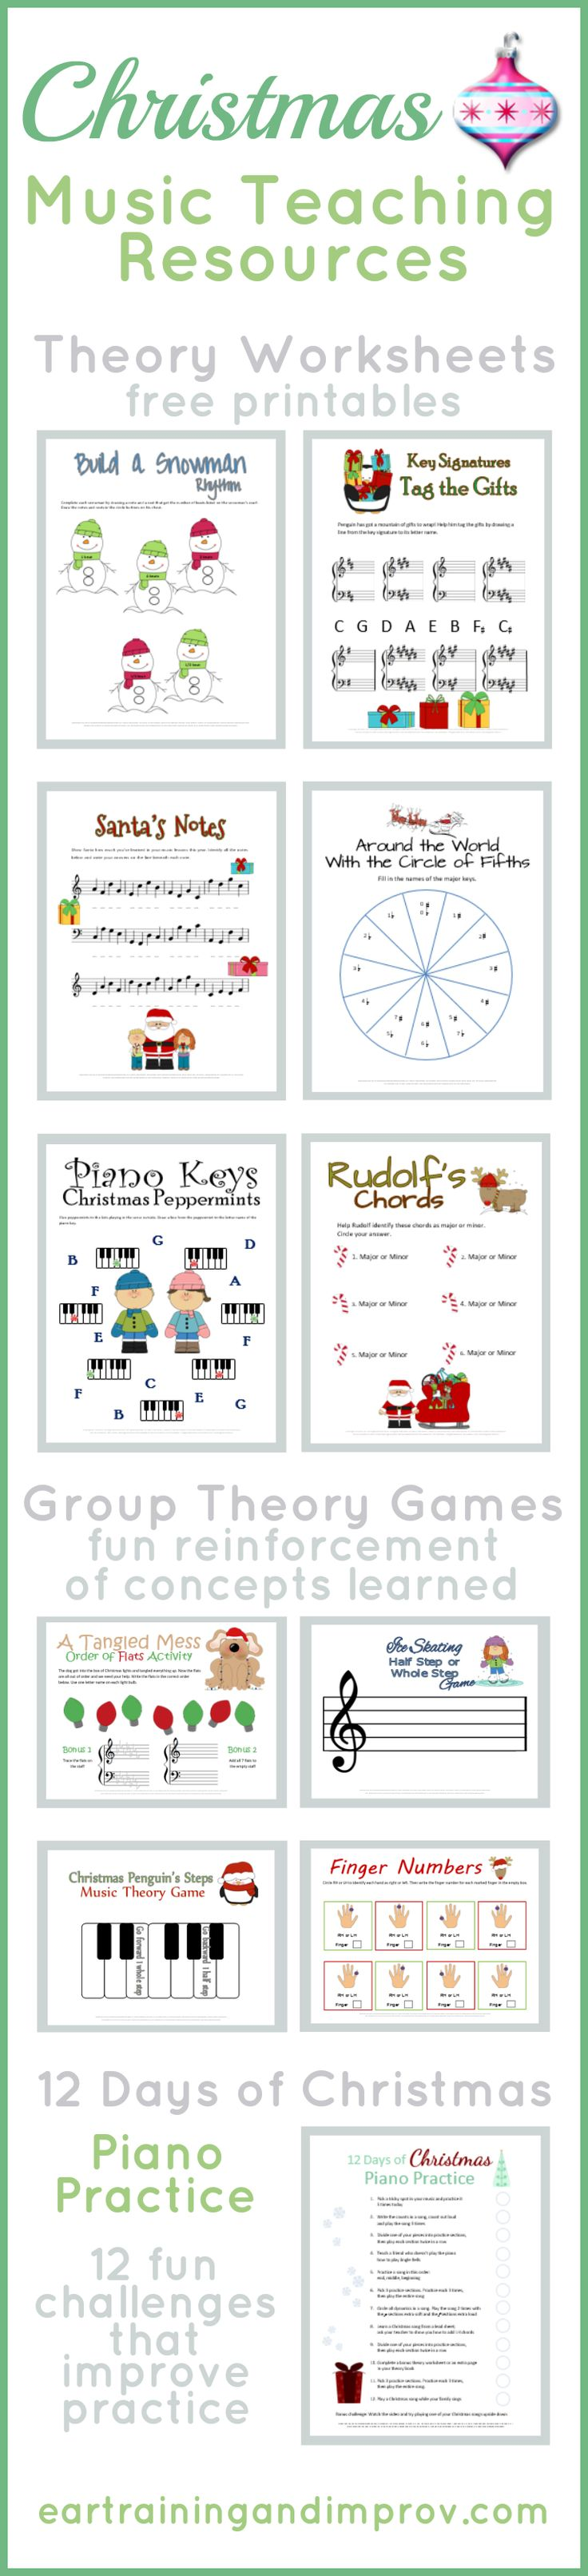 Uncategorized Printable Music Theory Worksheets 25 best ideas about music theory worksheets on pinterest lessons learning and theory